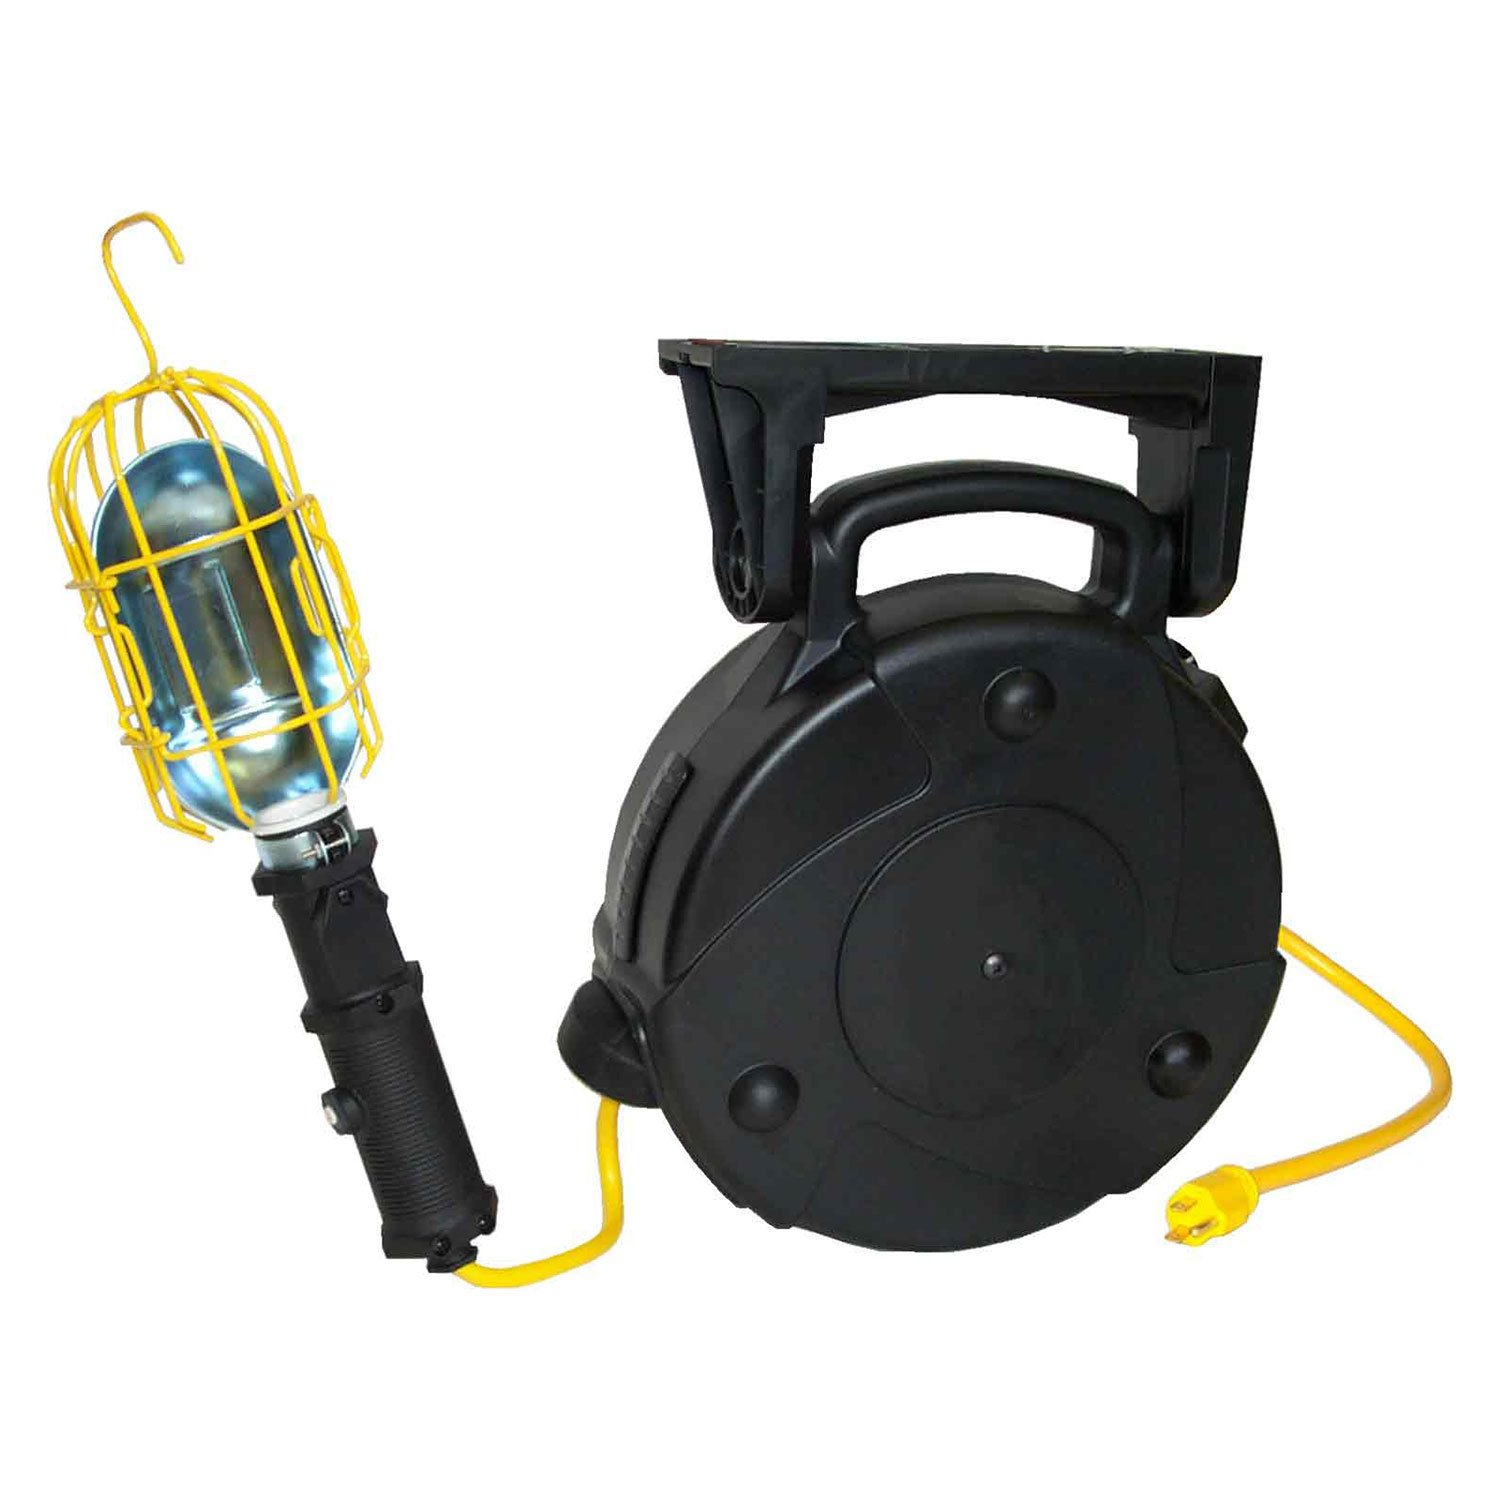 Lind Equipment 50' 14/3 SJTW Cable Reel, LE103 Heavy-Duty Incand. Work Light, 13A Outlet, 8050-103